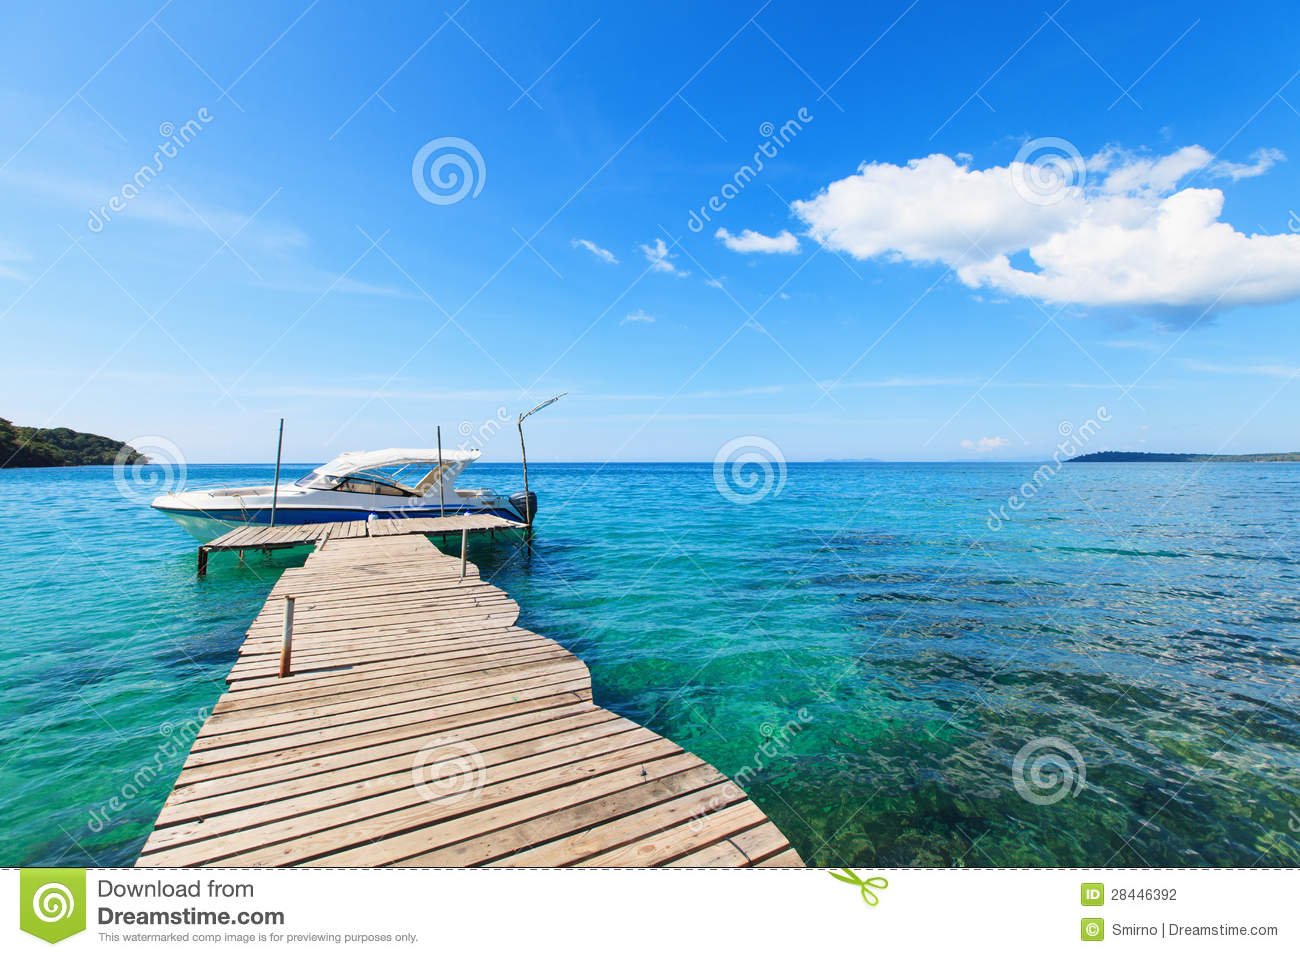 Old Wooden Boat Dock, Going Far Out To Sea. Stock Photo - Image: 28446392